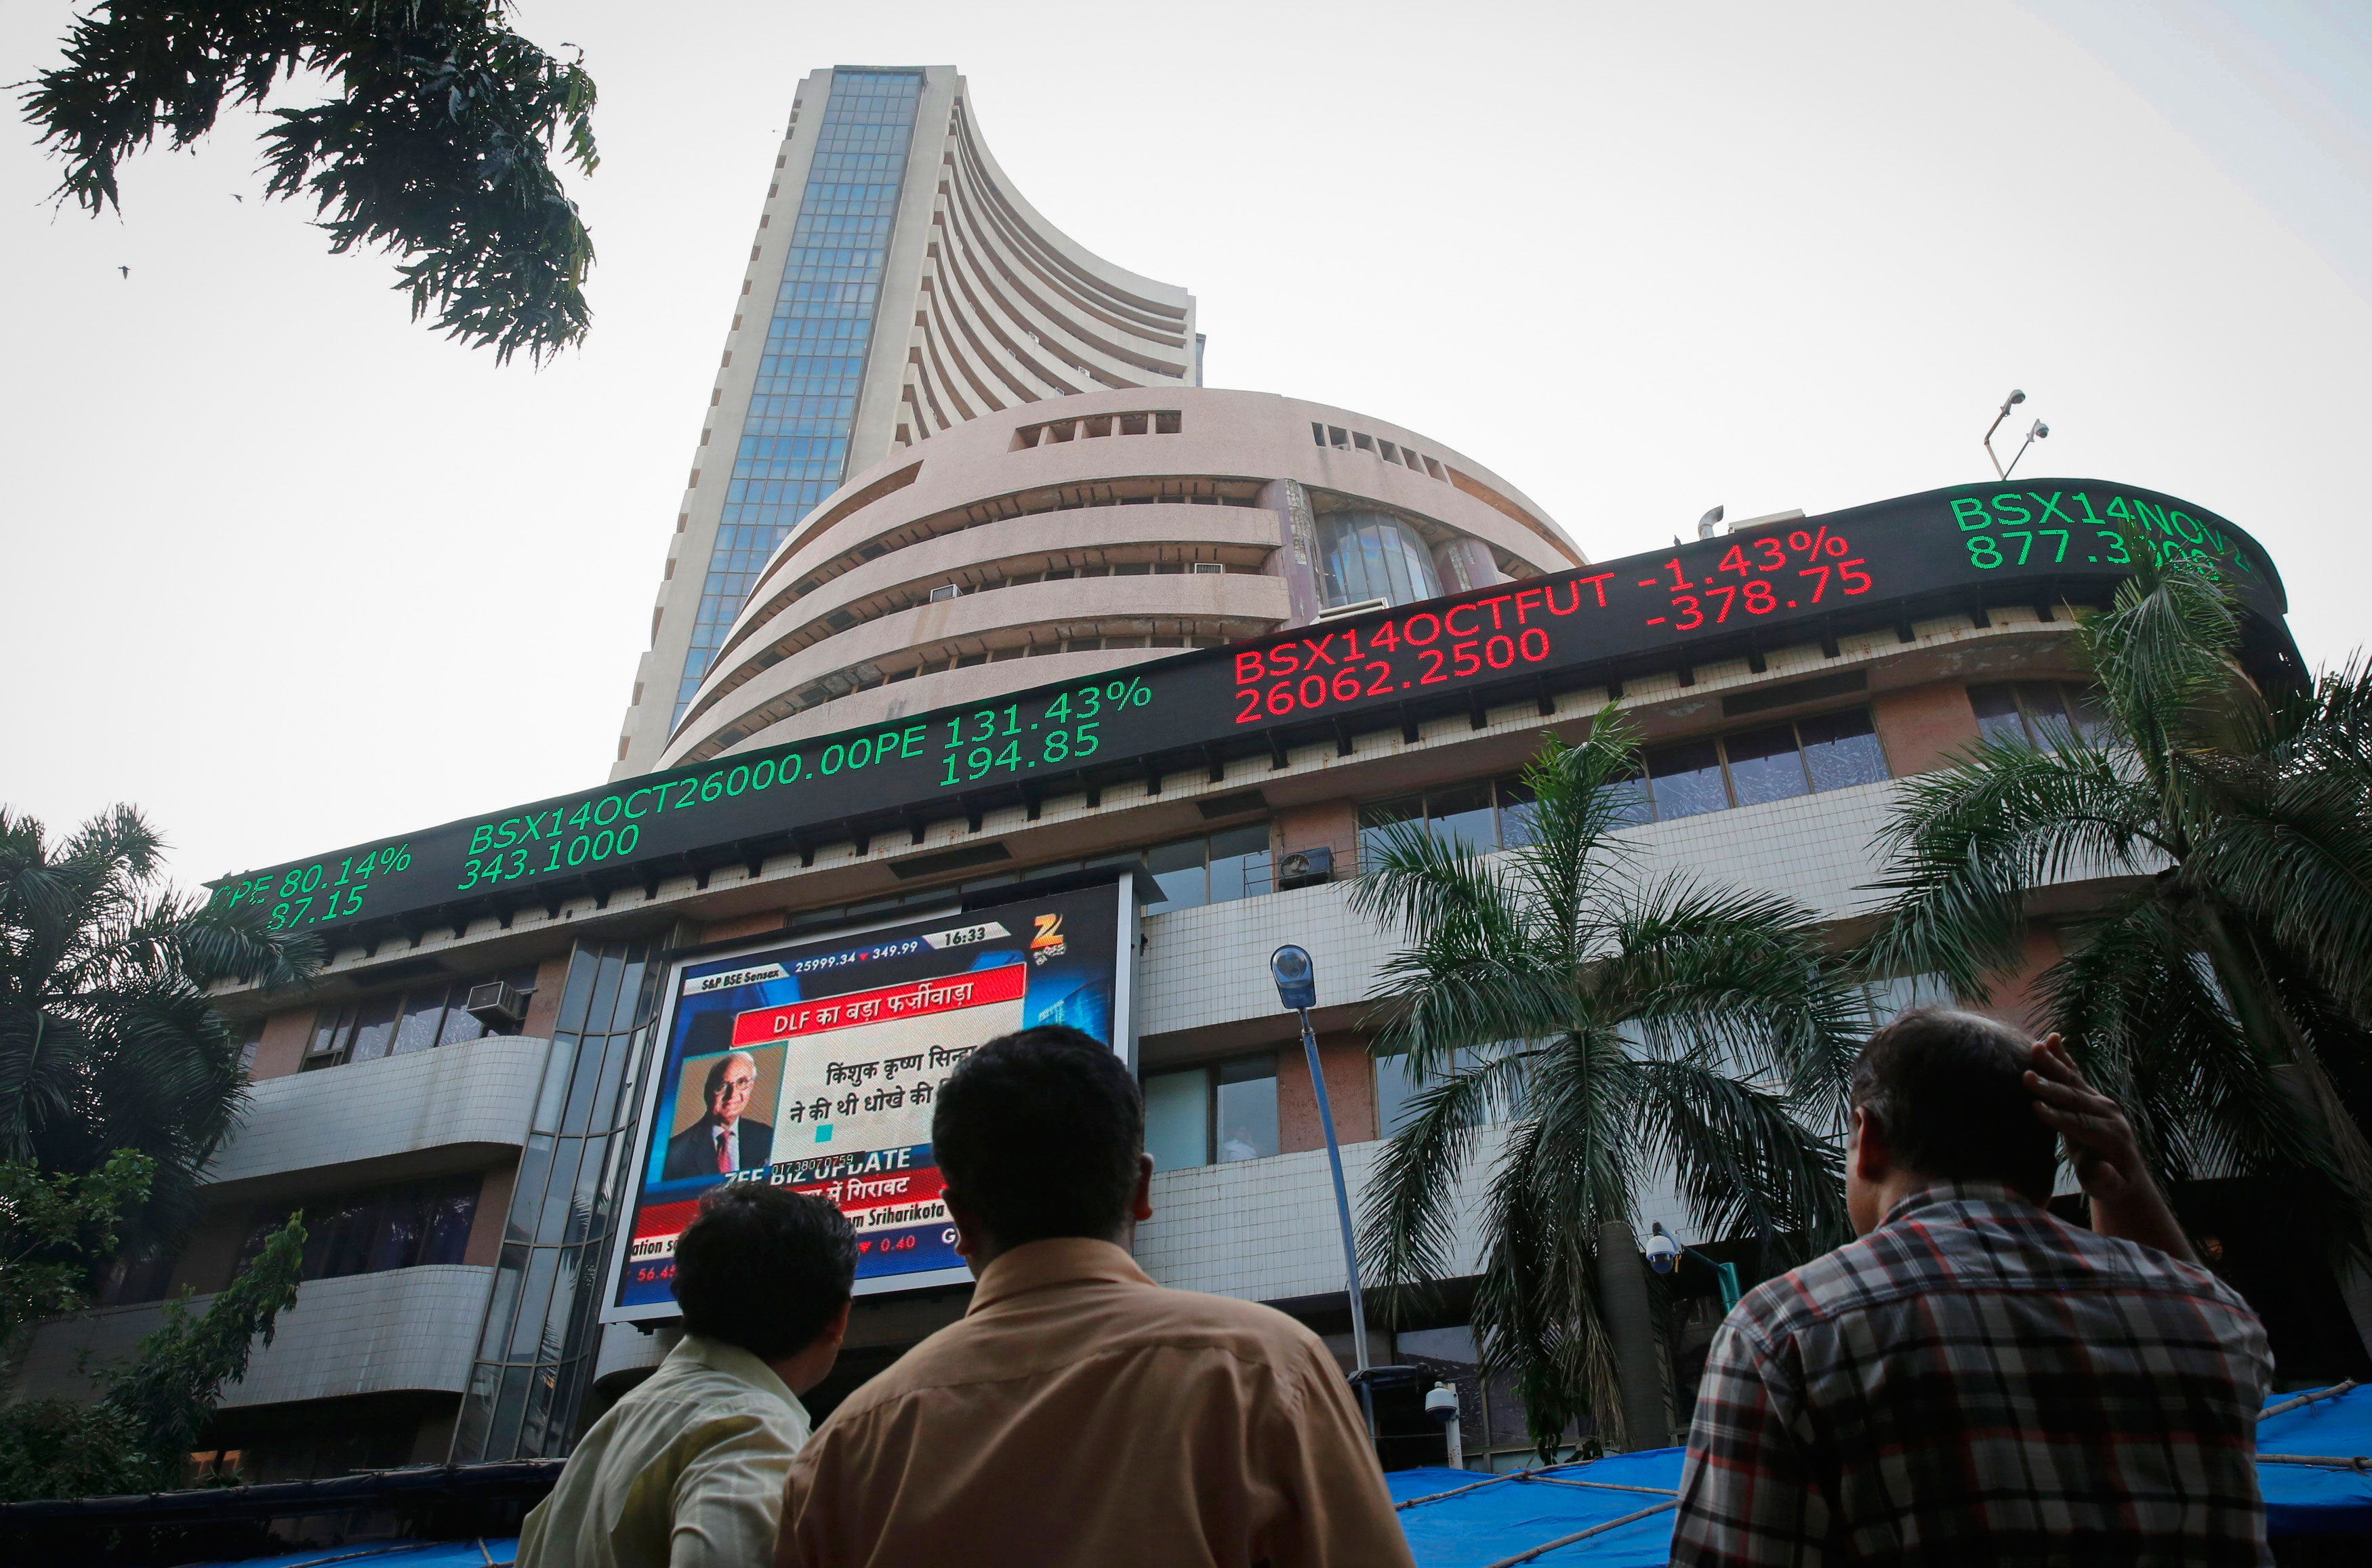 Sensex slides further to near 8-month low